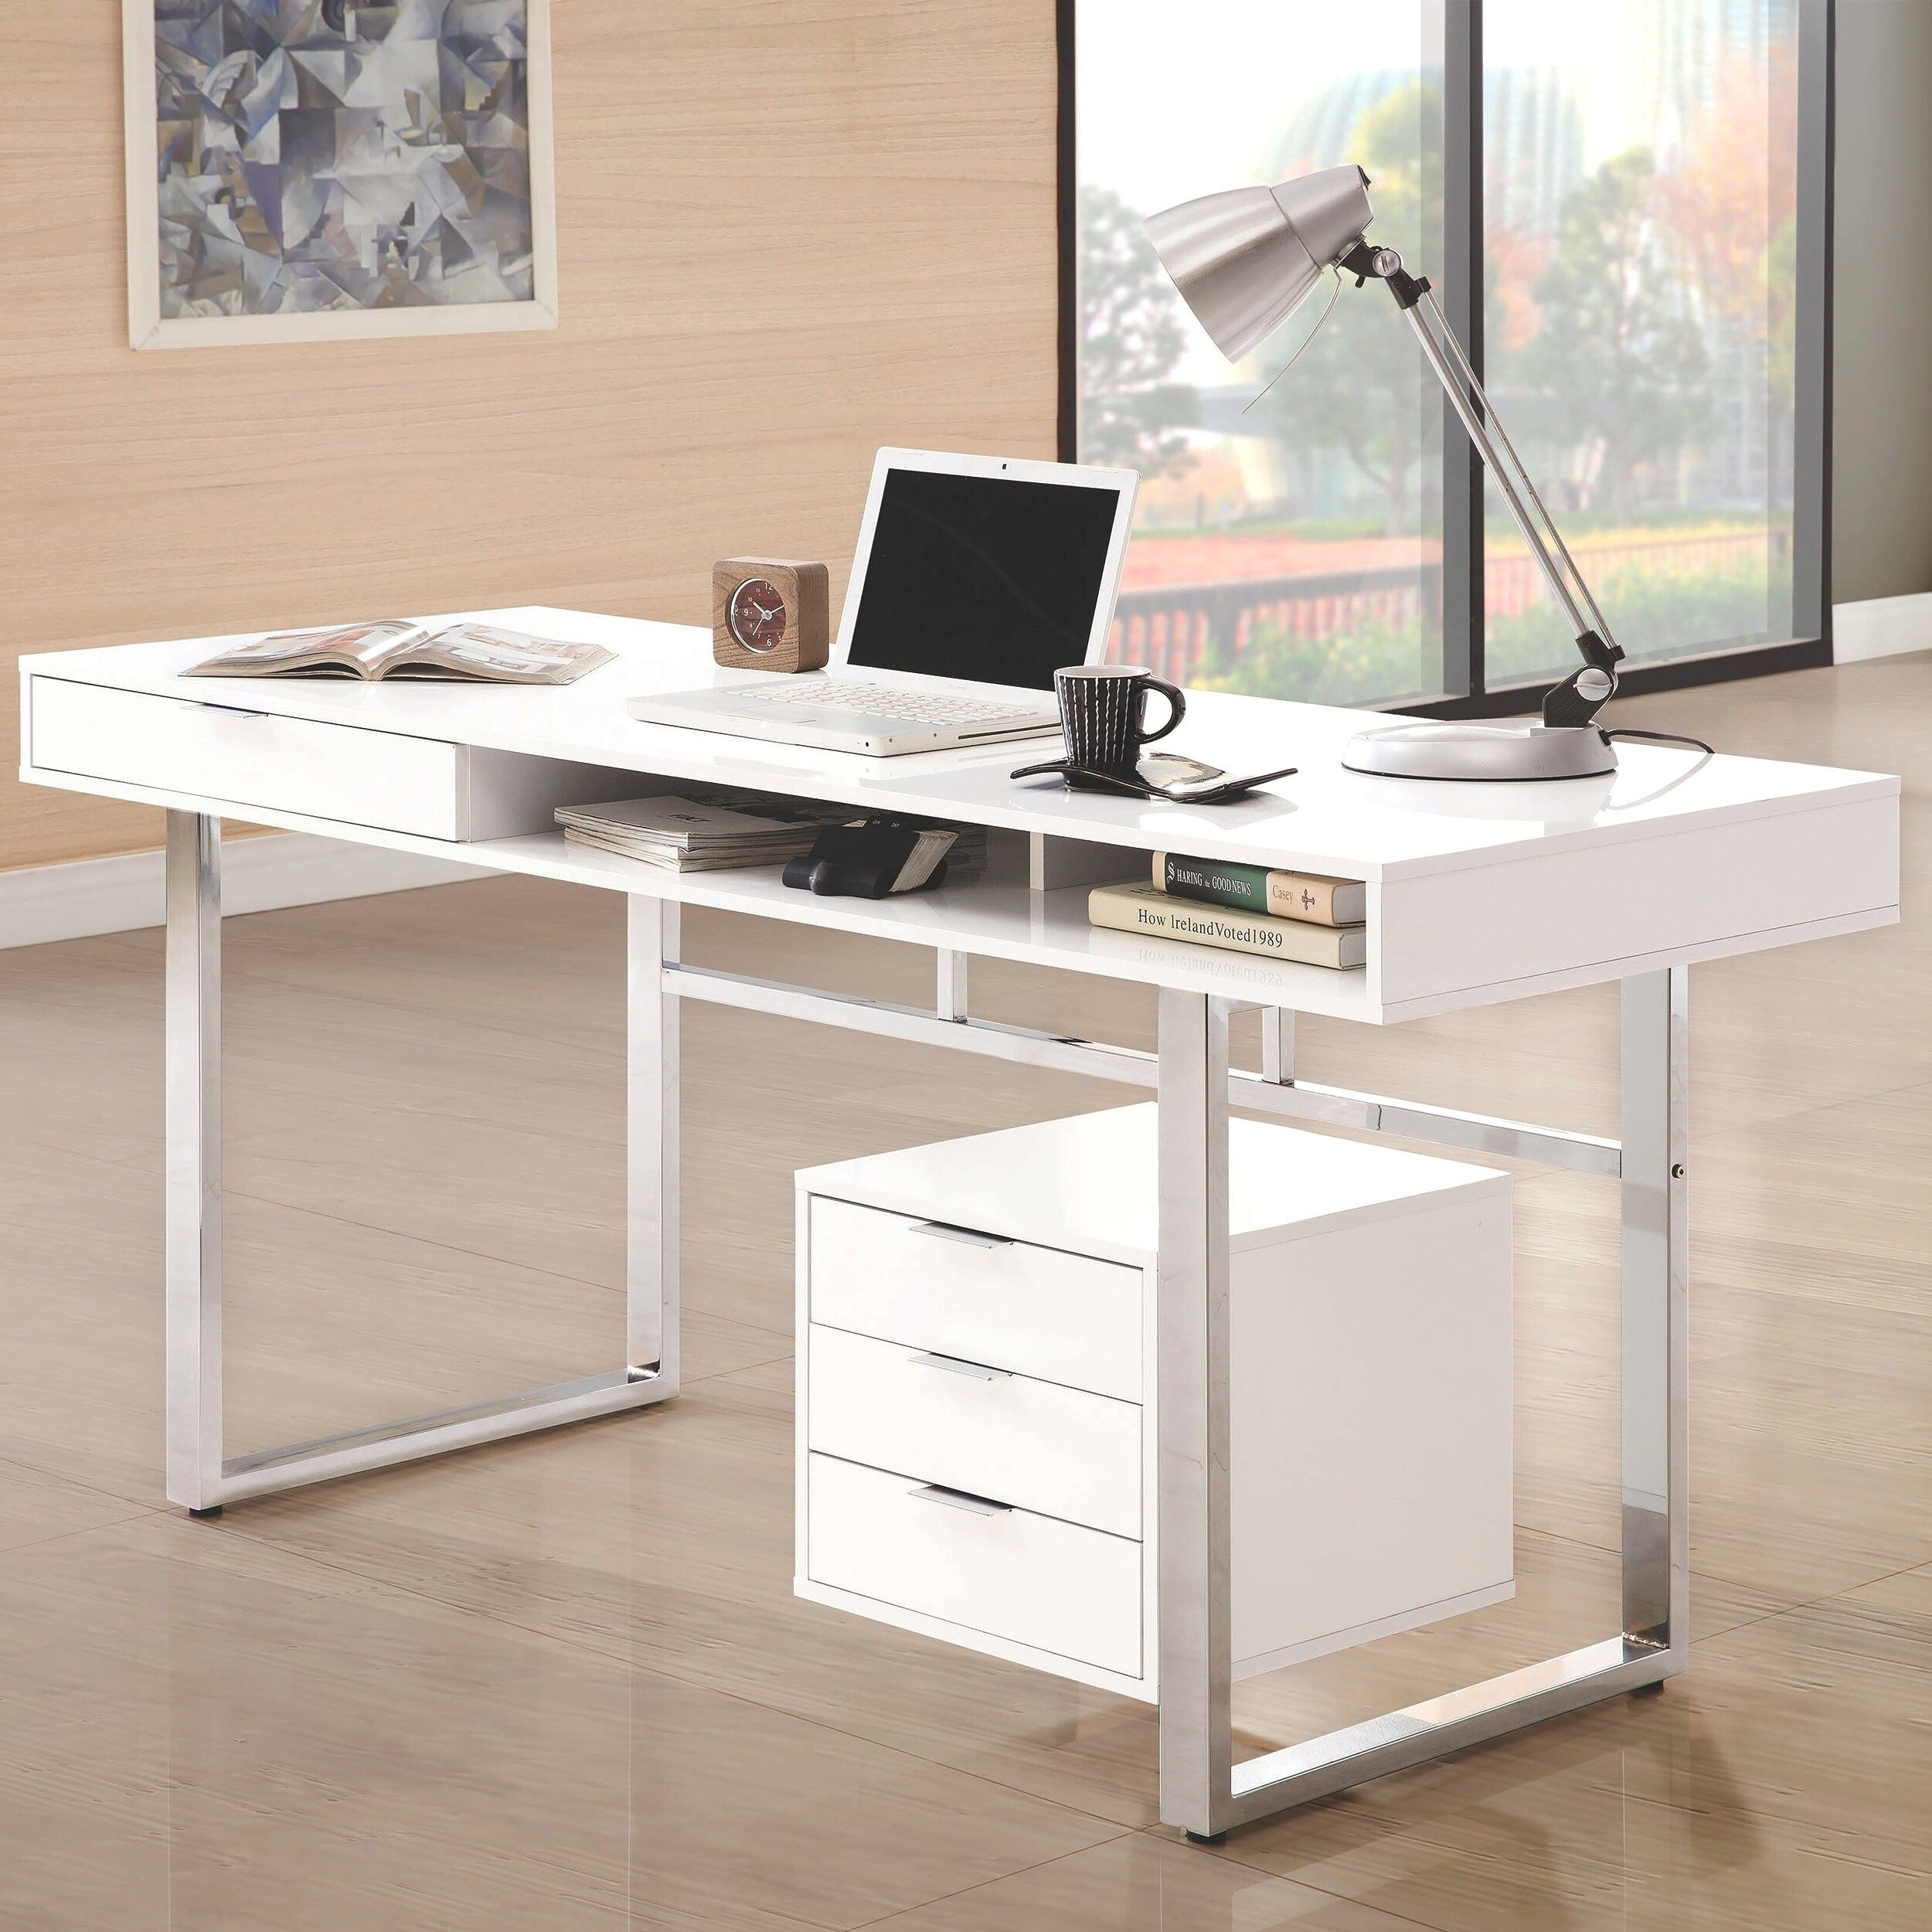 Modern Design Home Office Glossy White And Chrome Computer Writing Desk White Writing Desk Contemporary Writing Desk Wooden Writing Desk